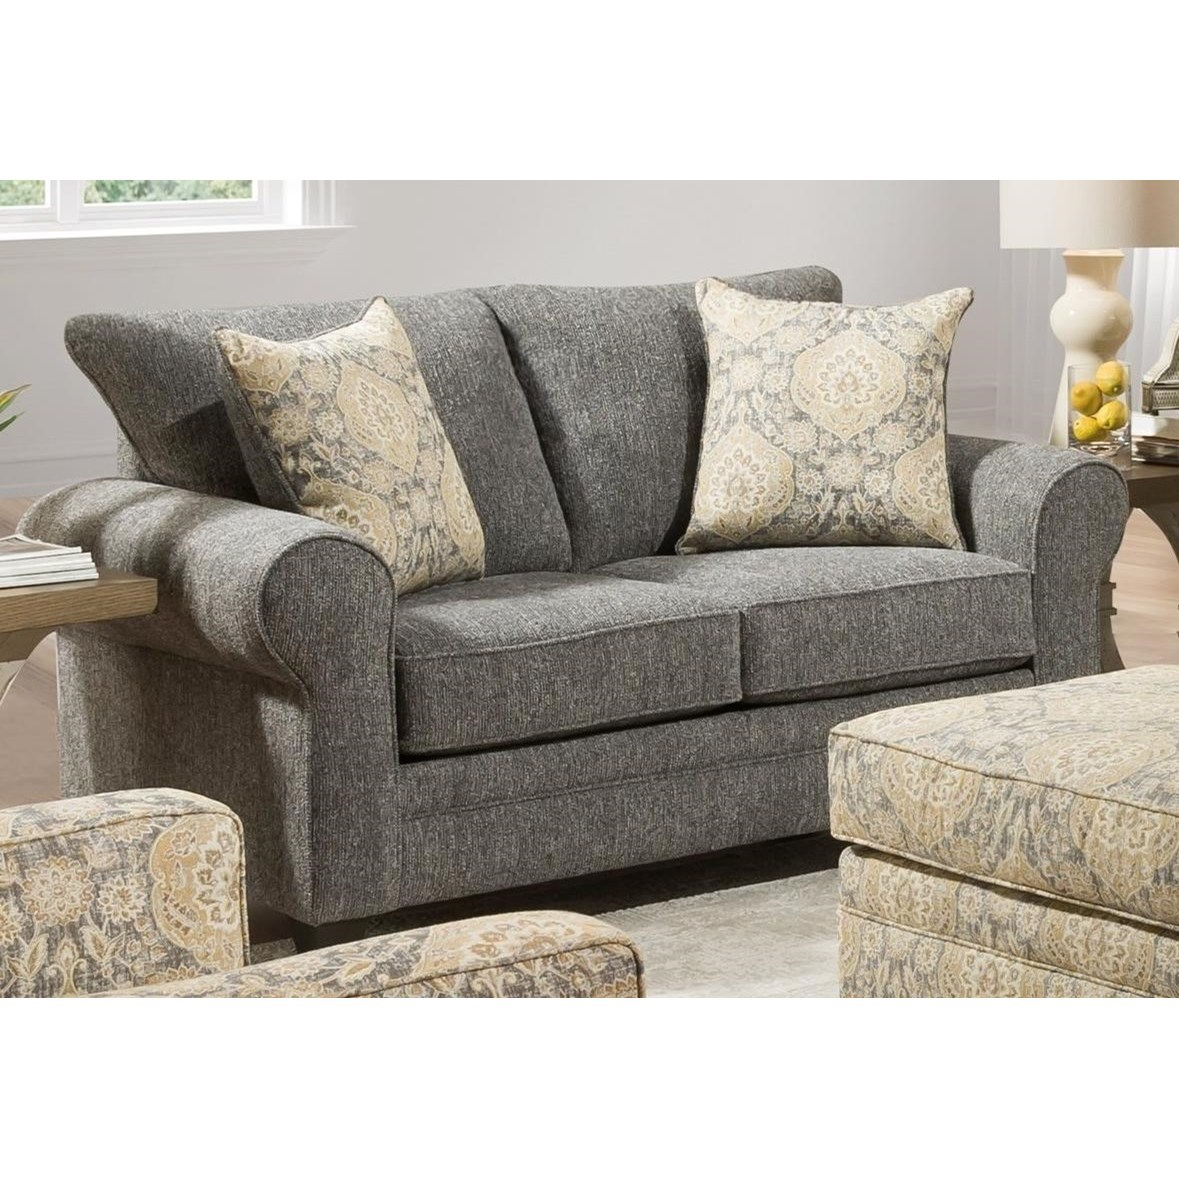 4170 Loveseat  by Peak Living at Prime Brothers Furniture